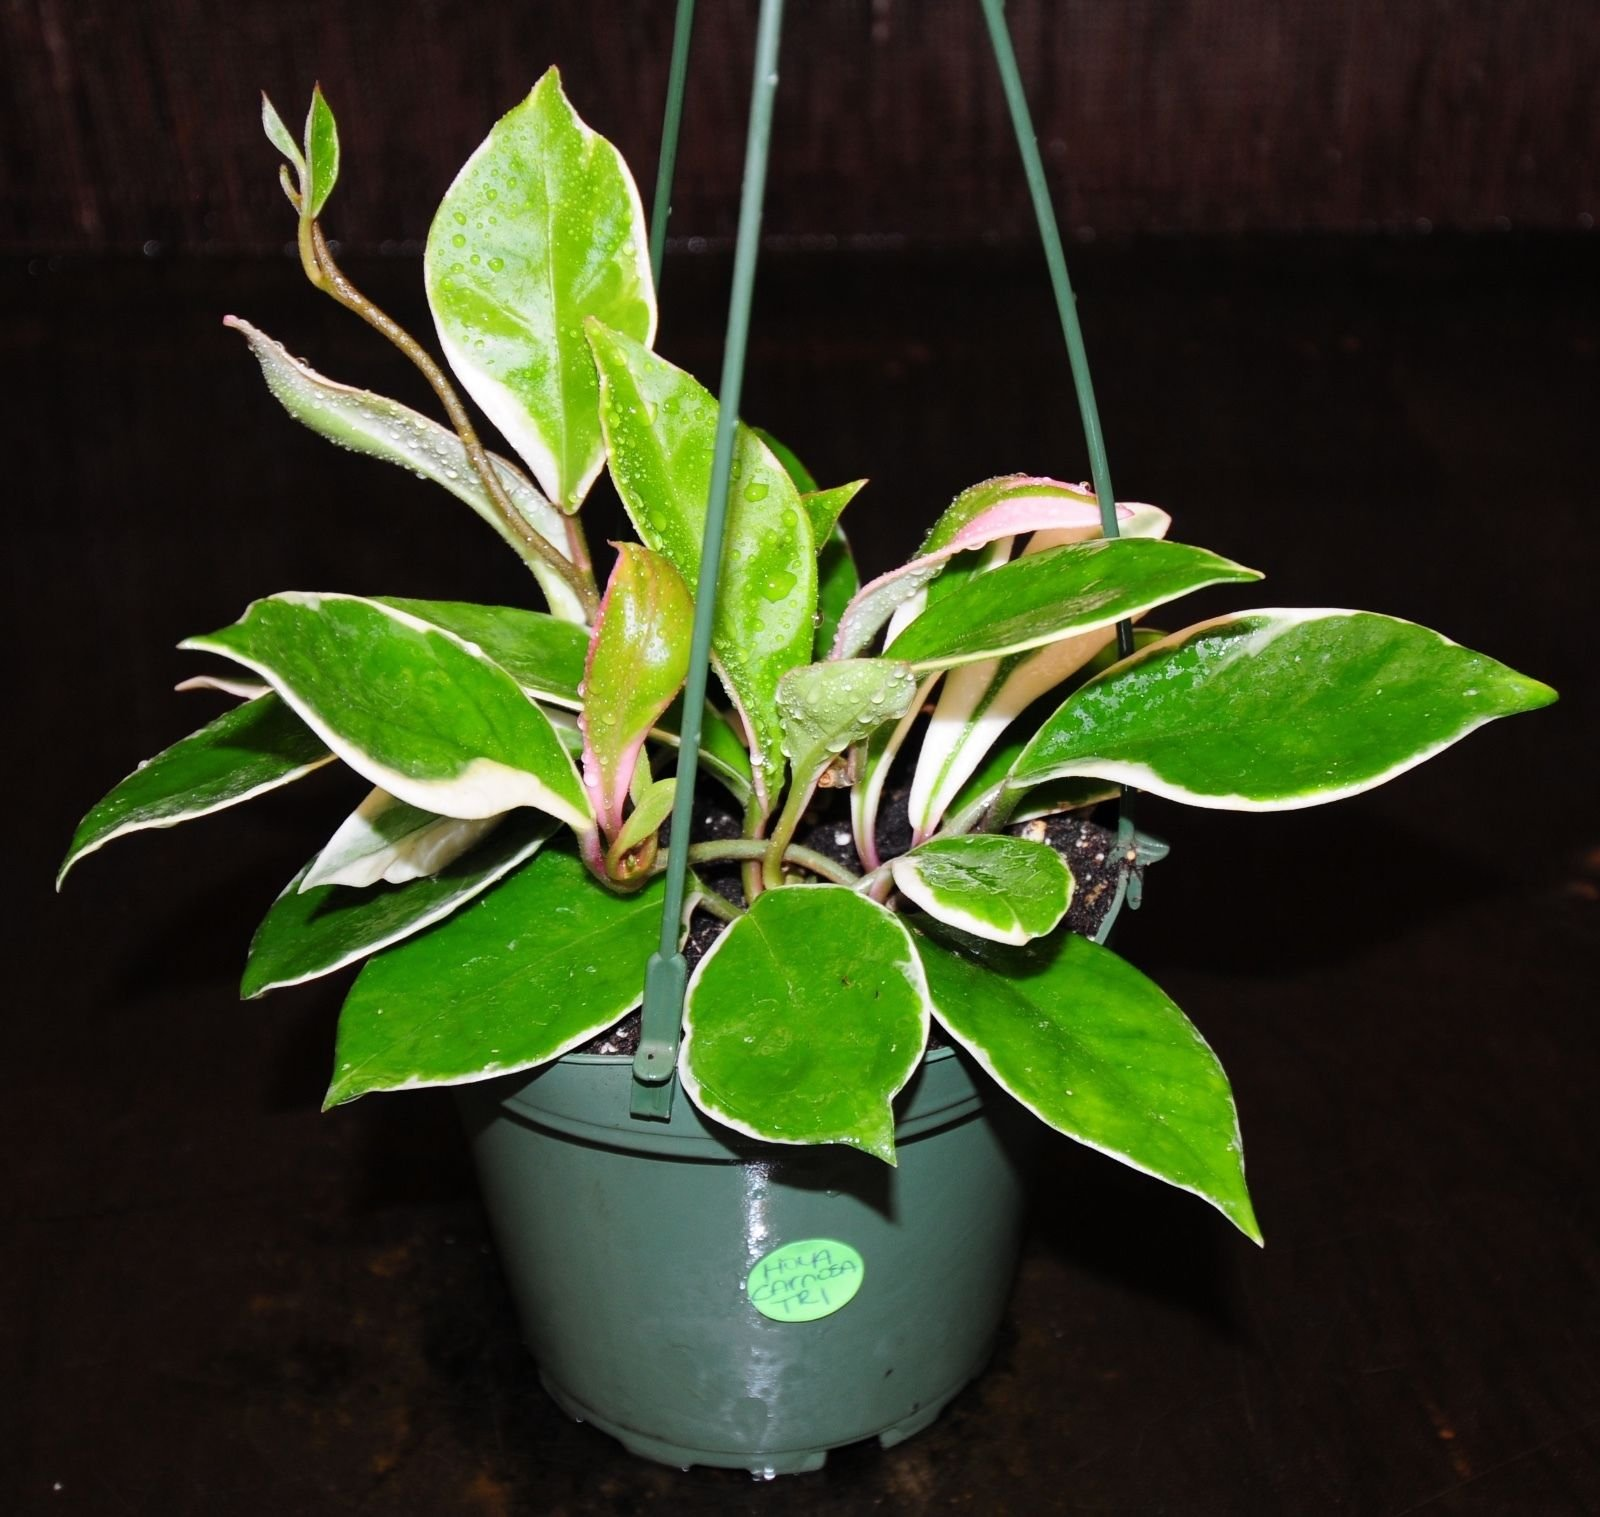 Awesome Hoya Carnosa Tricolor Hanging Baskets Excellent Orchid Companions (Premium Quality) by AY-Premium